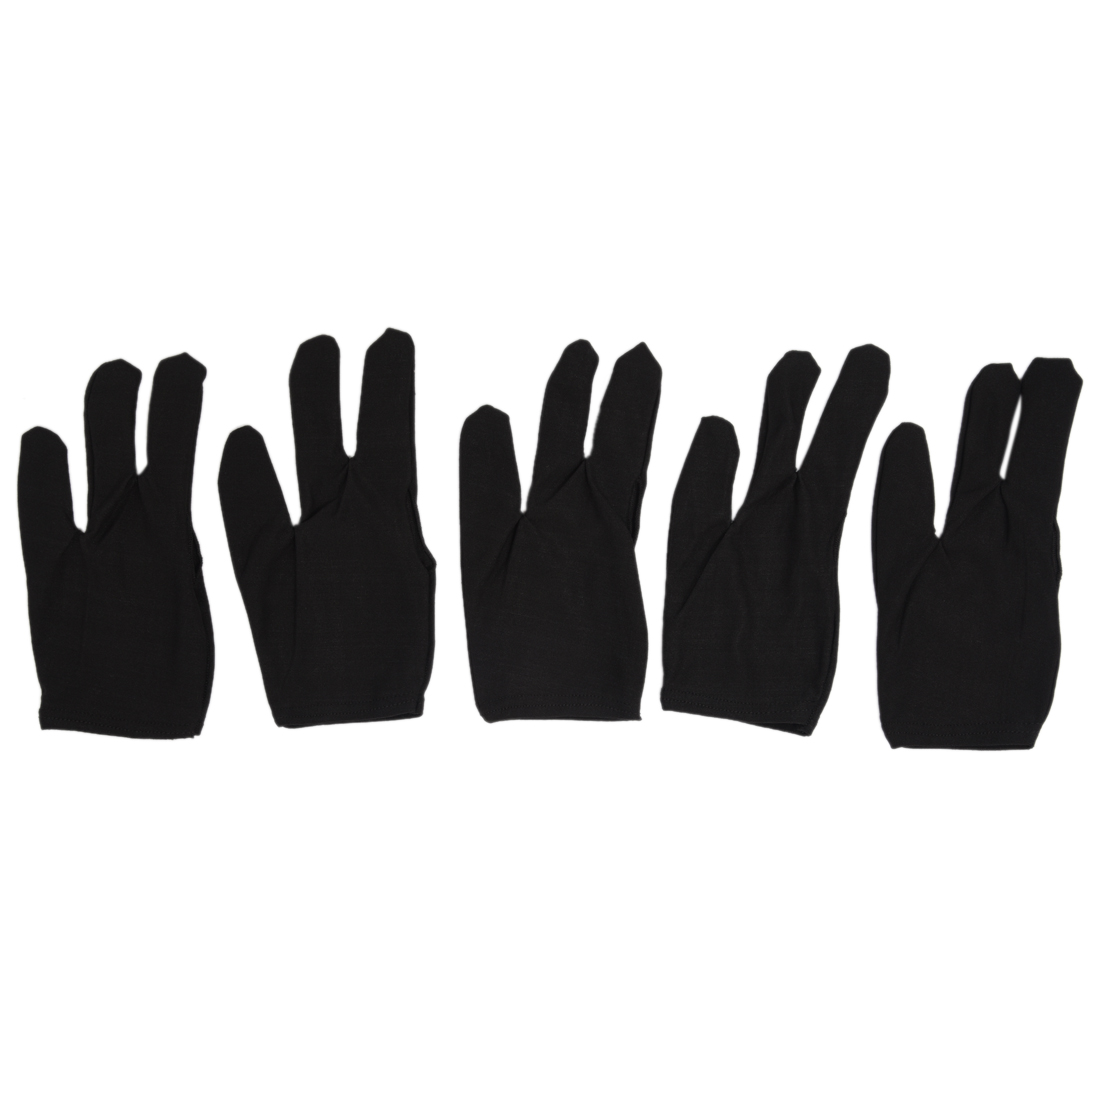 New Sale 5 x 3 Fingers font b Gloves b font for Cue Billiards Snooker Black